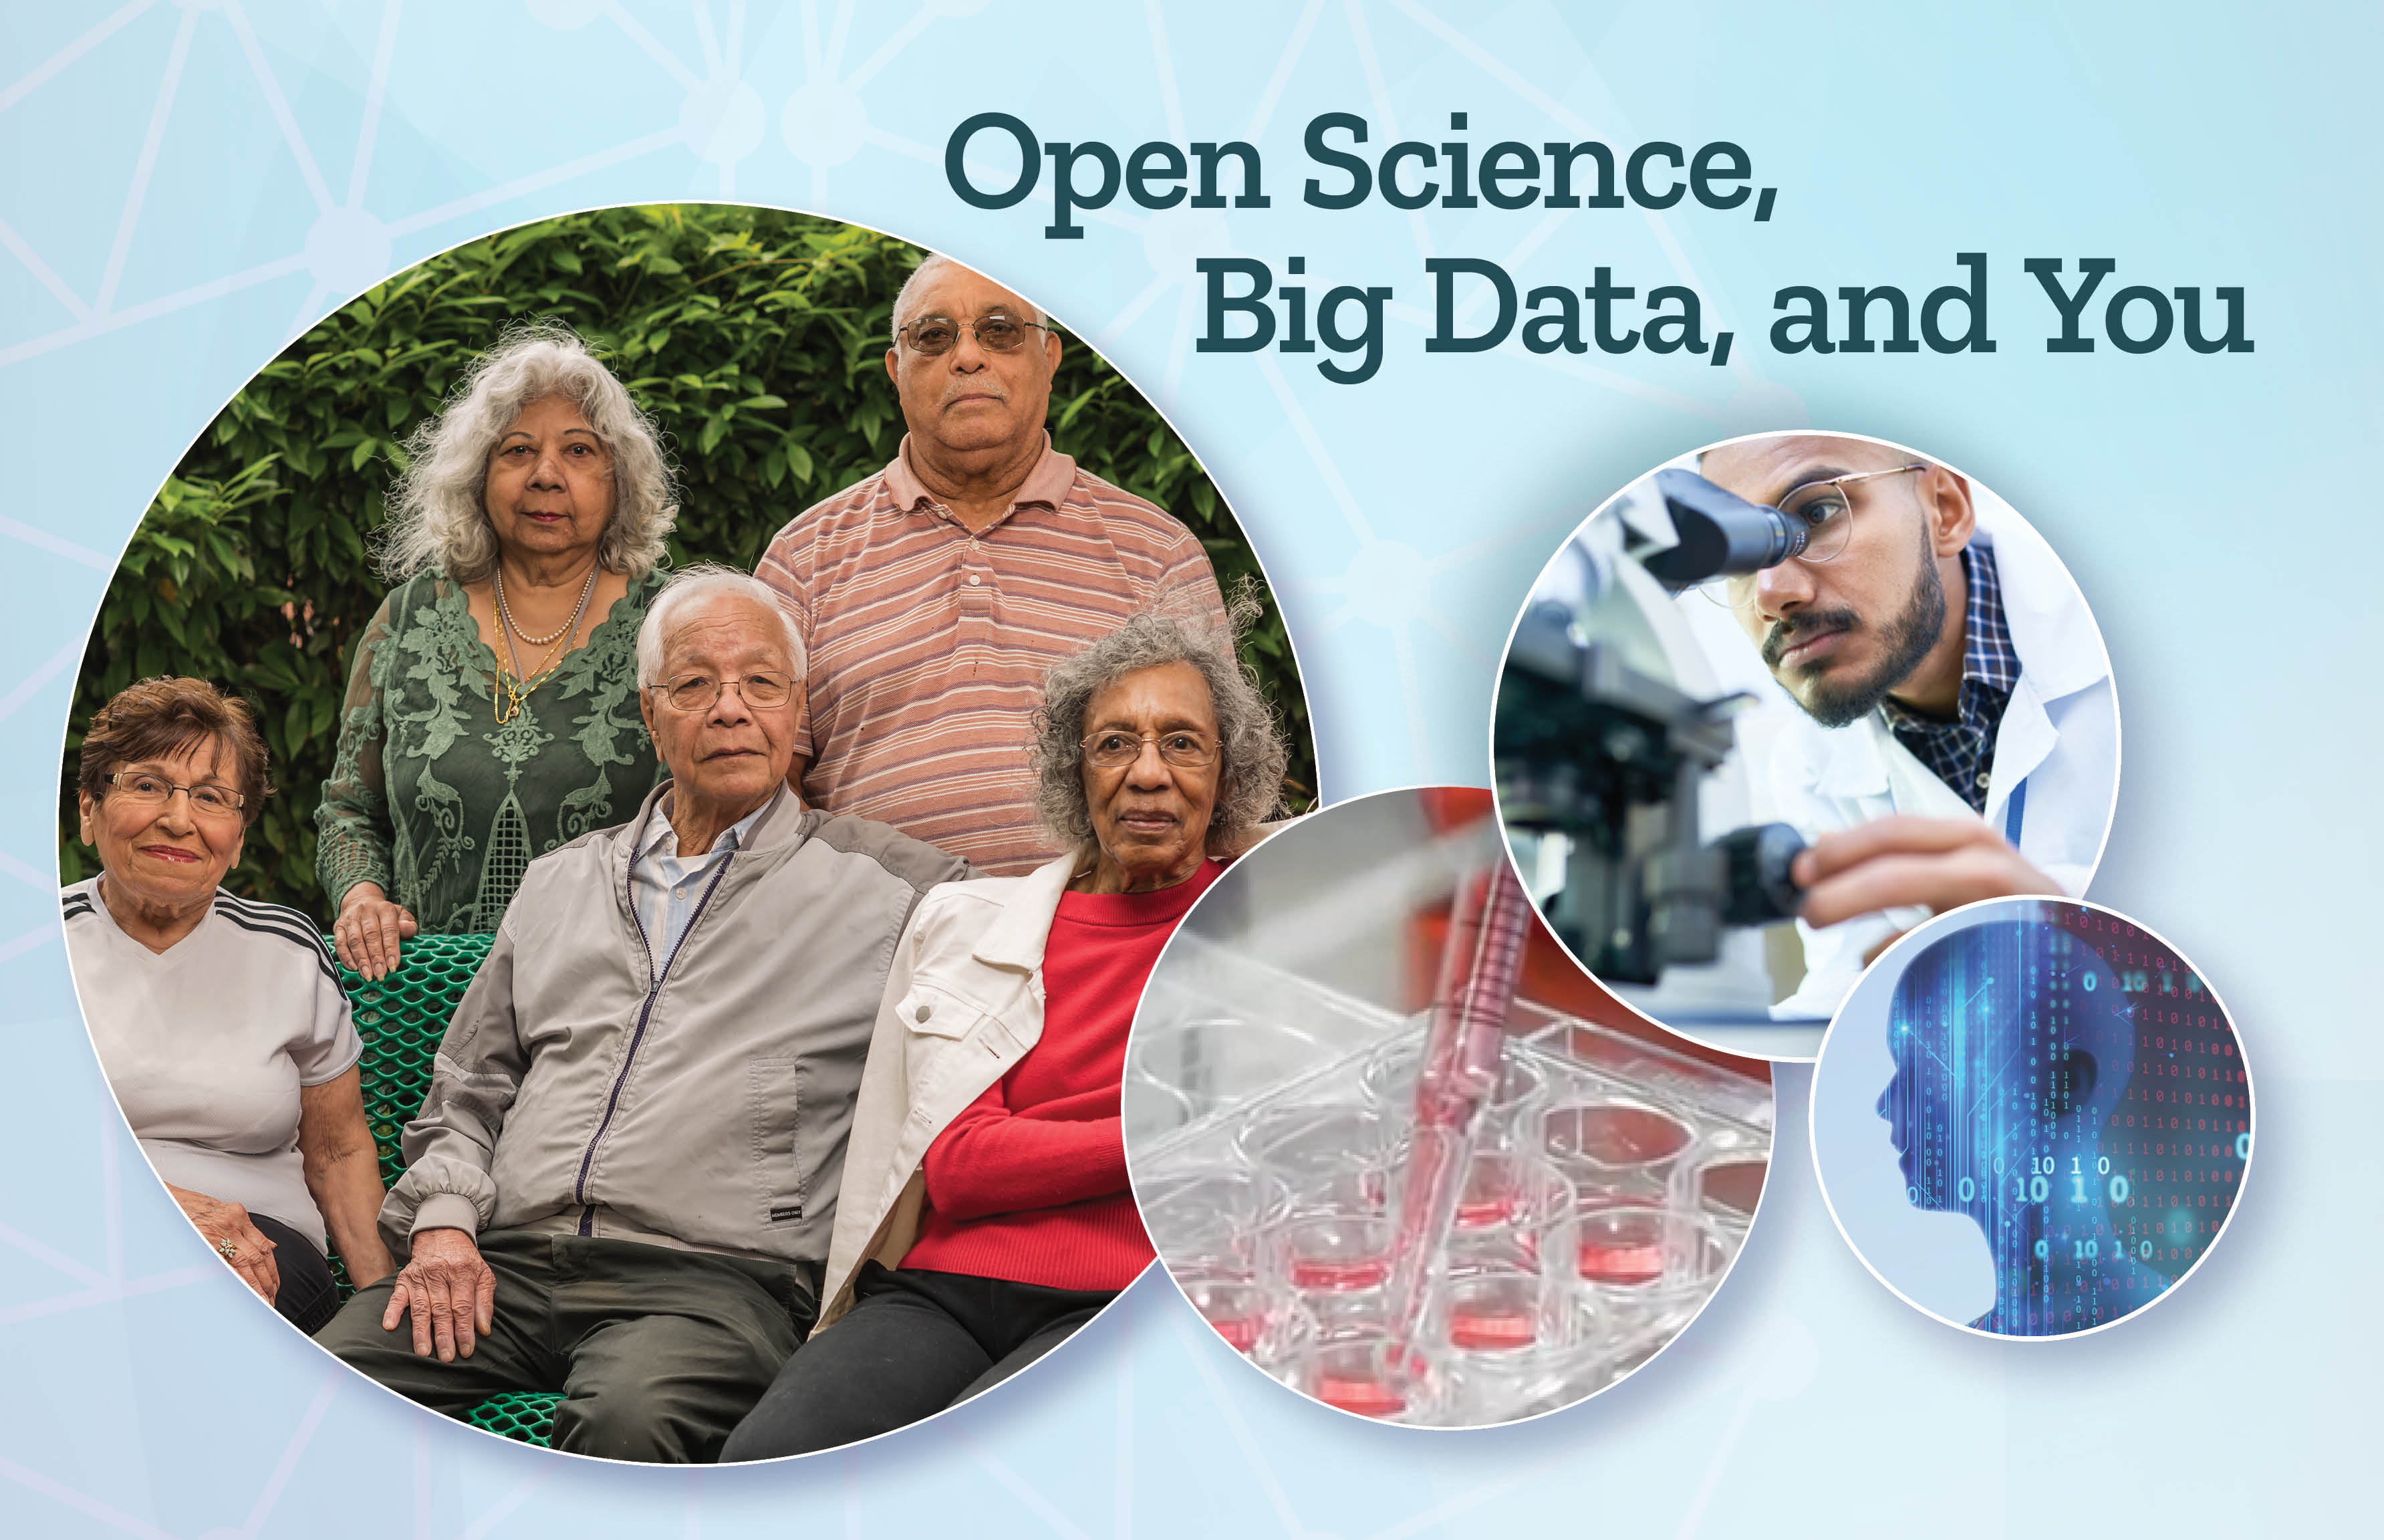 Open Science, Big Data, and You